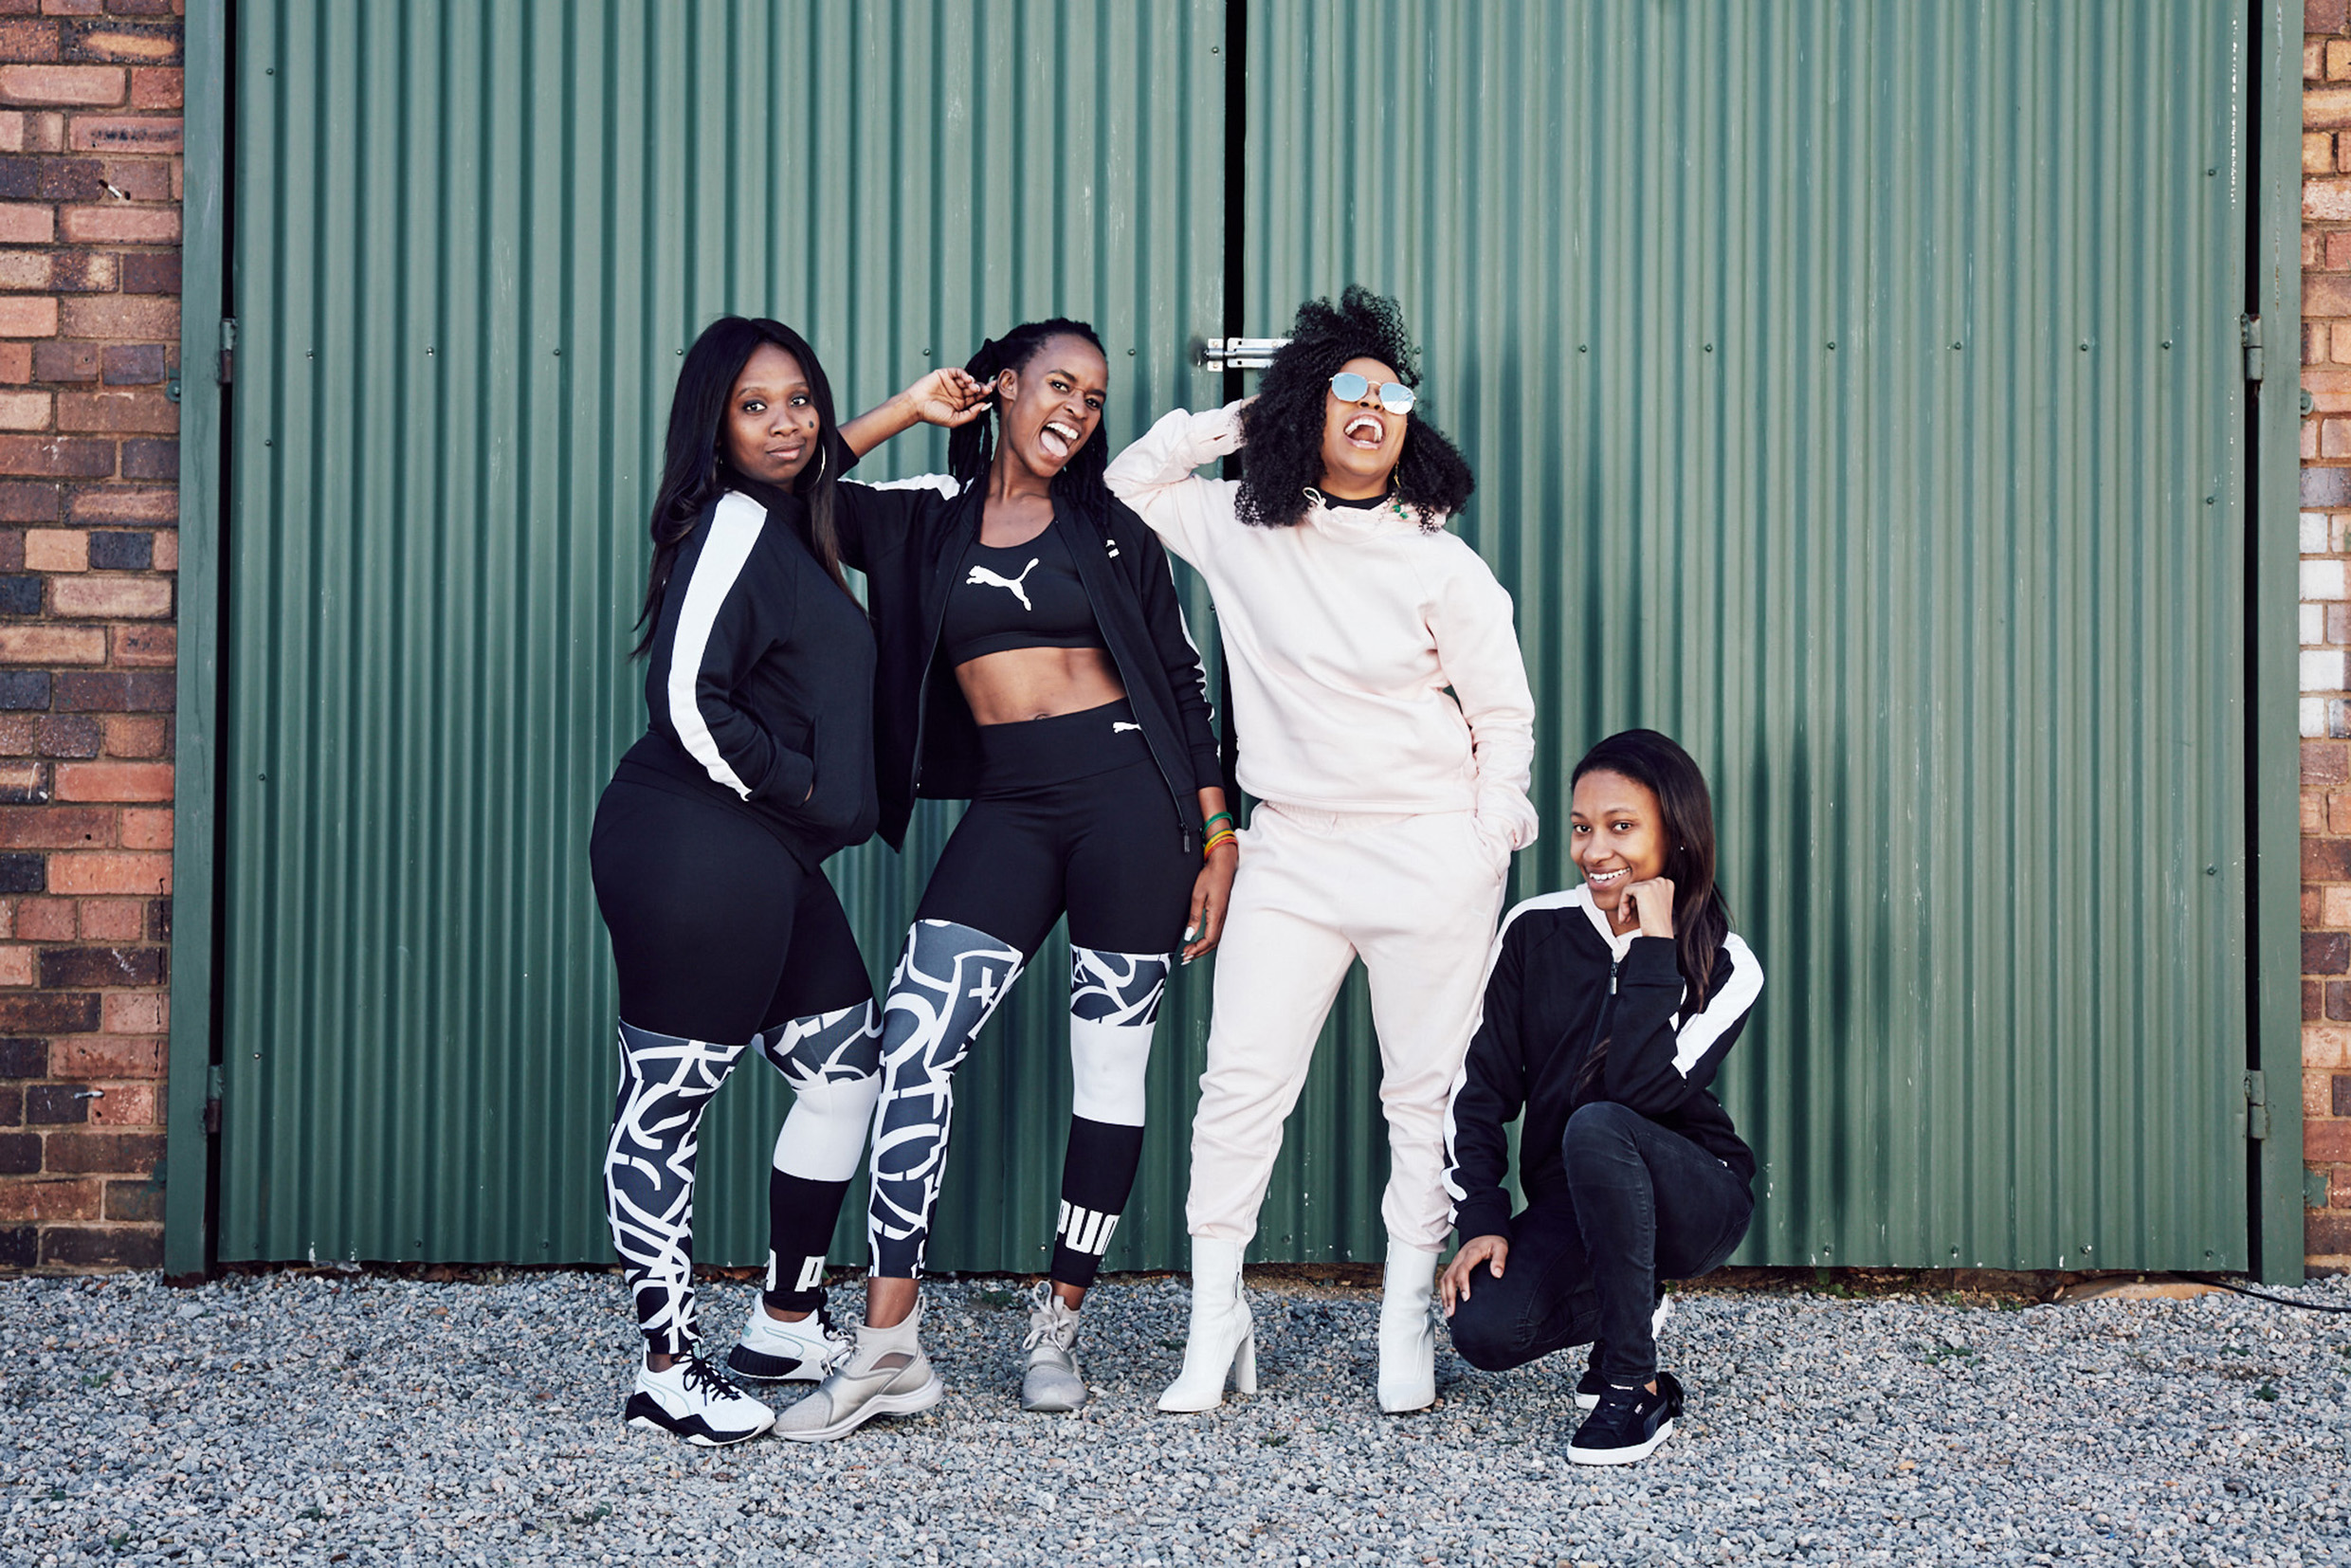 PUMA and Nomzamo Mbatha empower on Women's Day